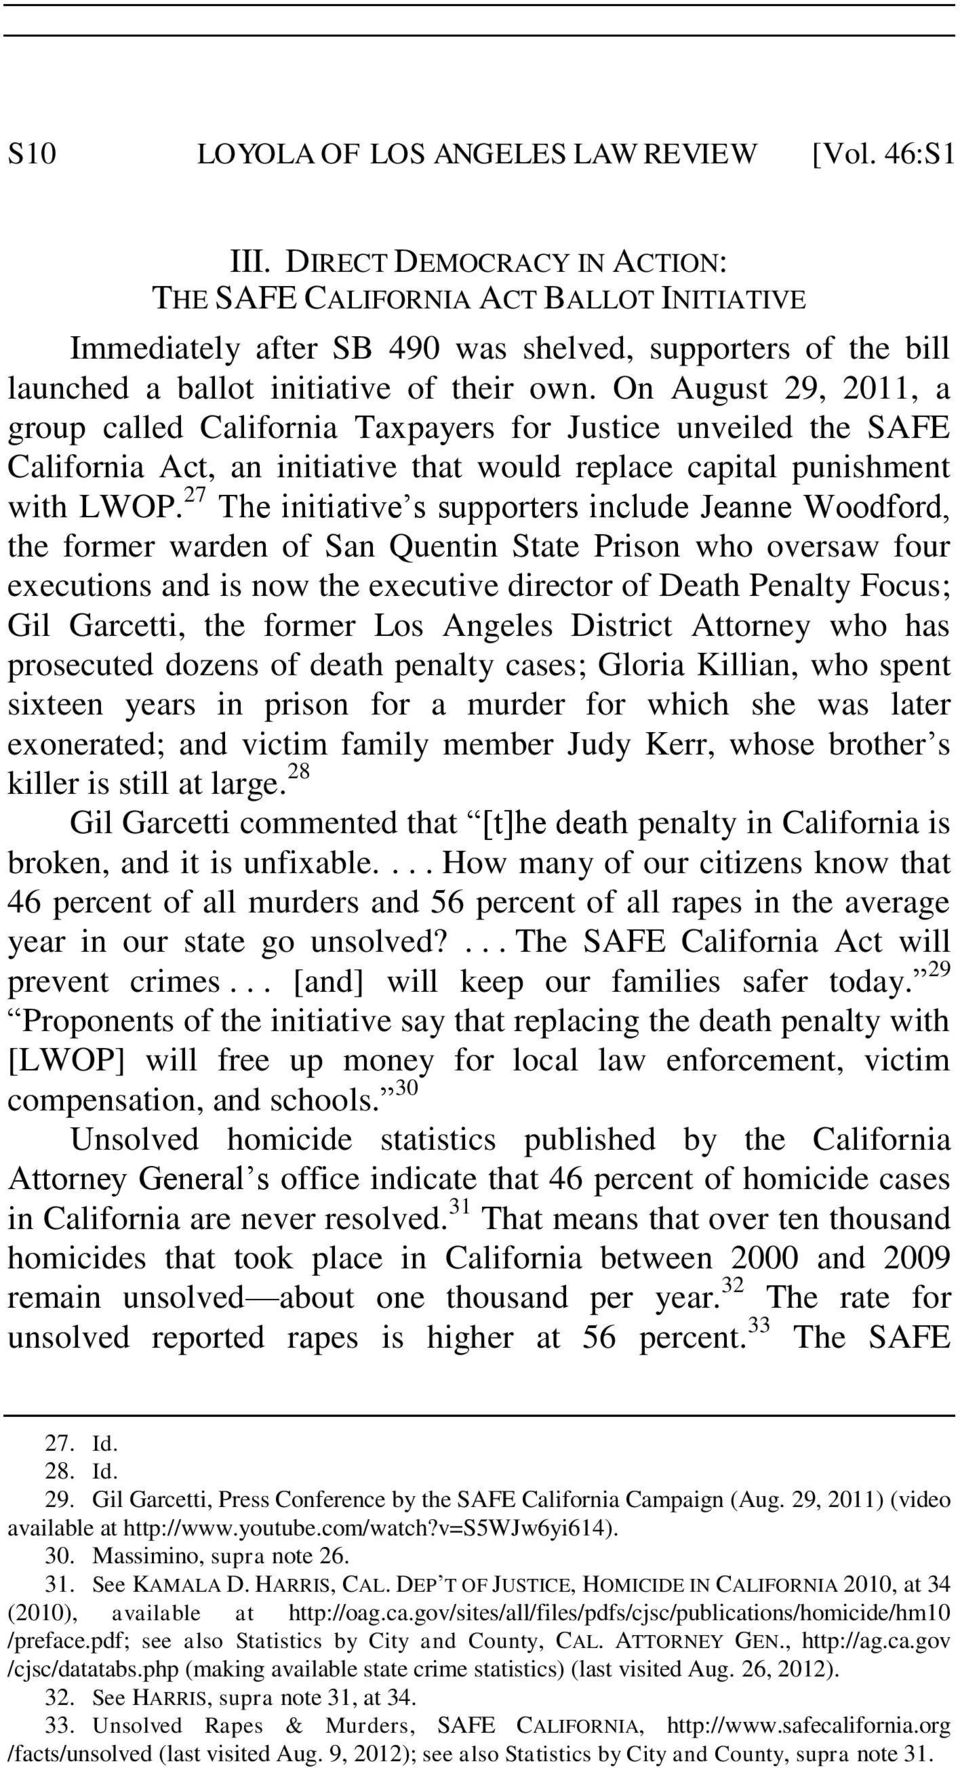 On August 29, 2011, a group called California Taxpayers for Justice unveiled the SAFE California Act, an initiative that would replace capital punishment with LWOP.